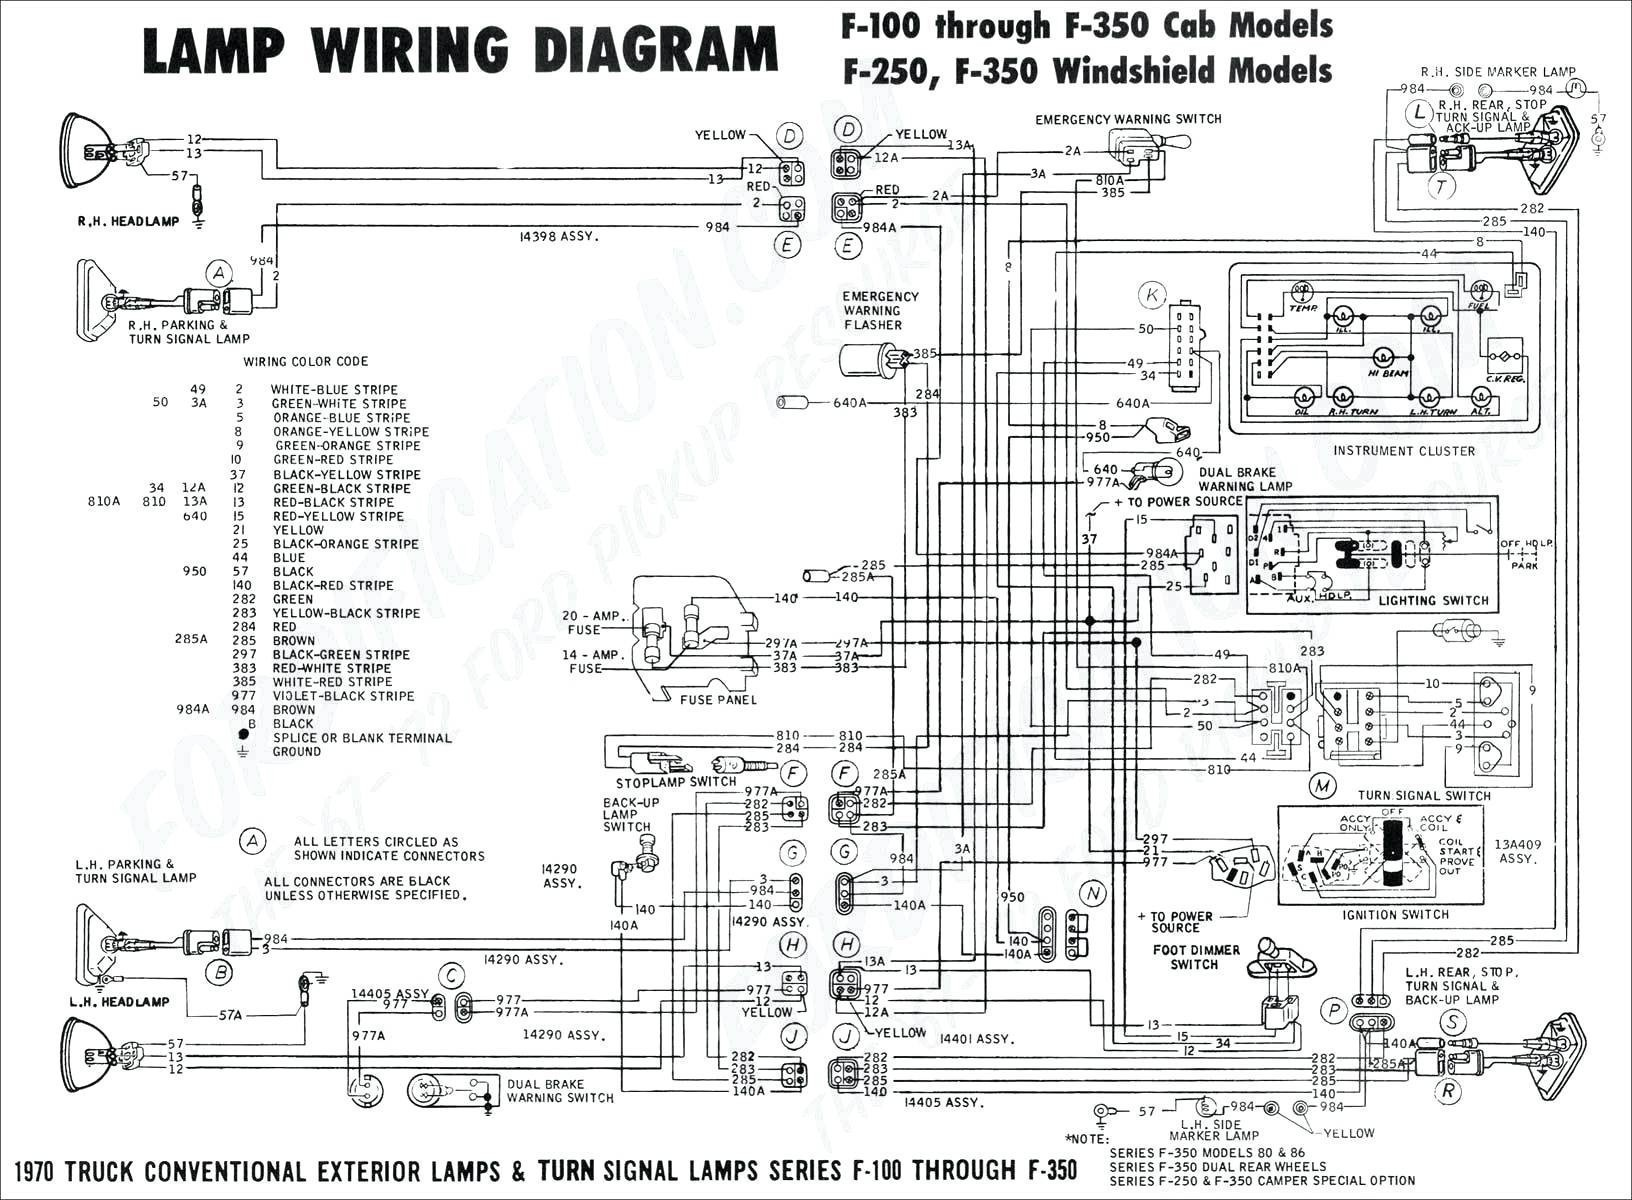 2008 Chevy Silverado Wiring Diagram Vw R32 Wiring Diagram Experts Wiring Diagram • Of 2008 Chevy Silverado Wiring Diagram